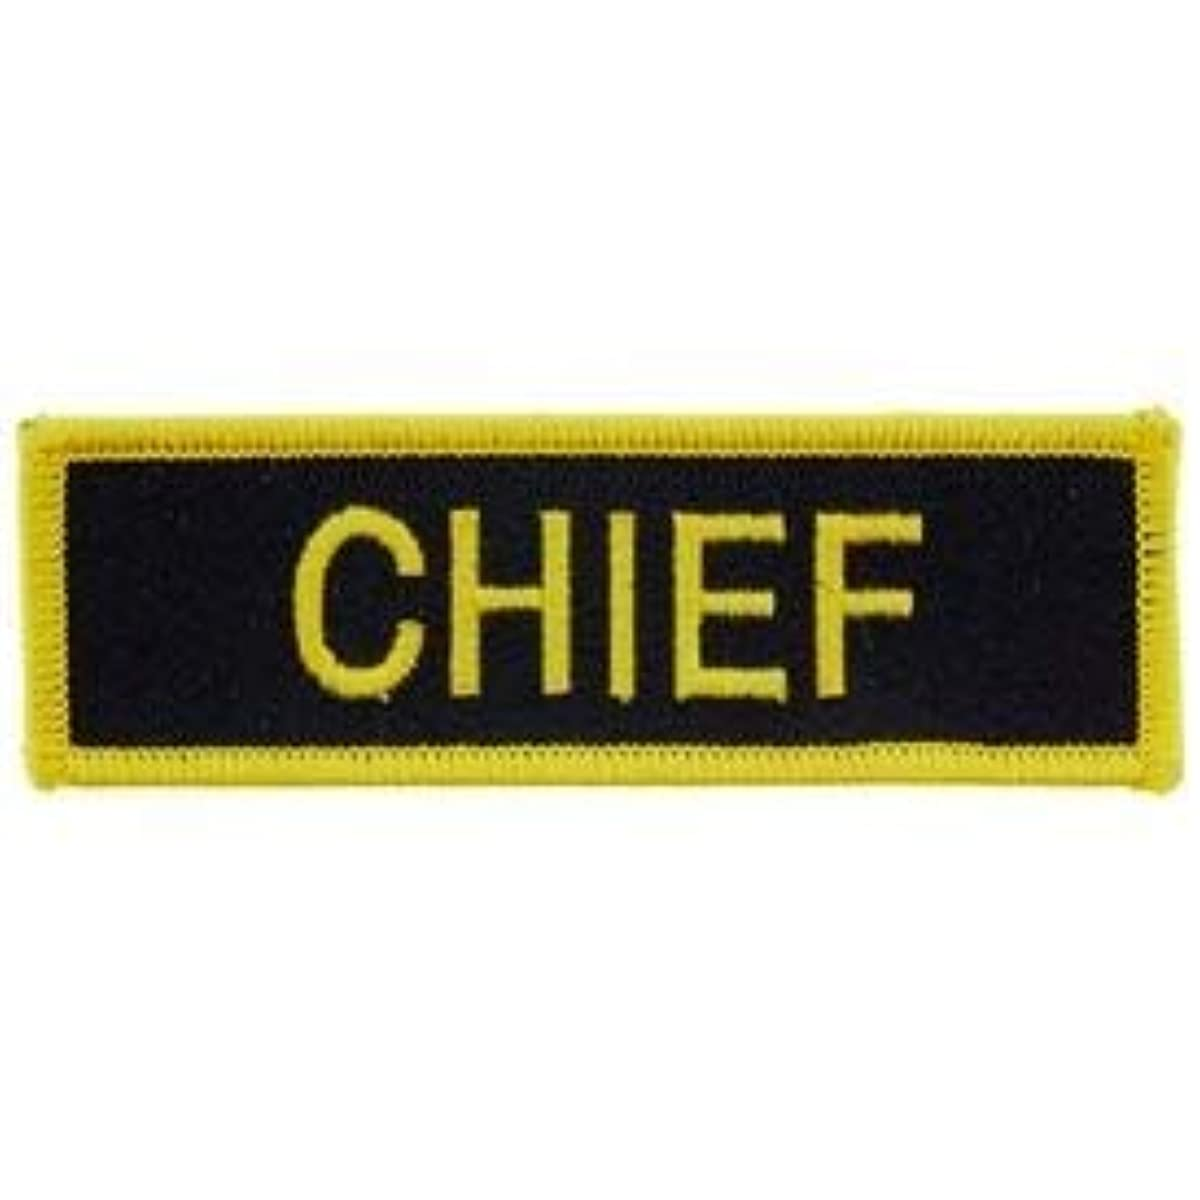 Chief - Patriotic Patches, Premium Quality Embroidered Iron On Patch - 1.25